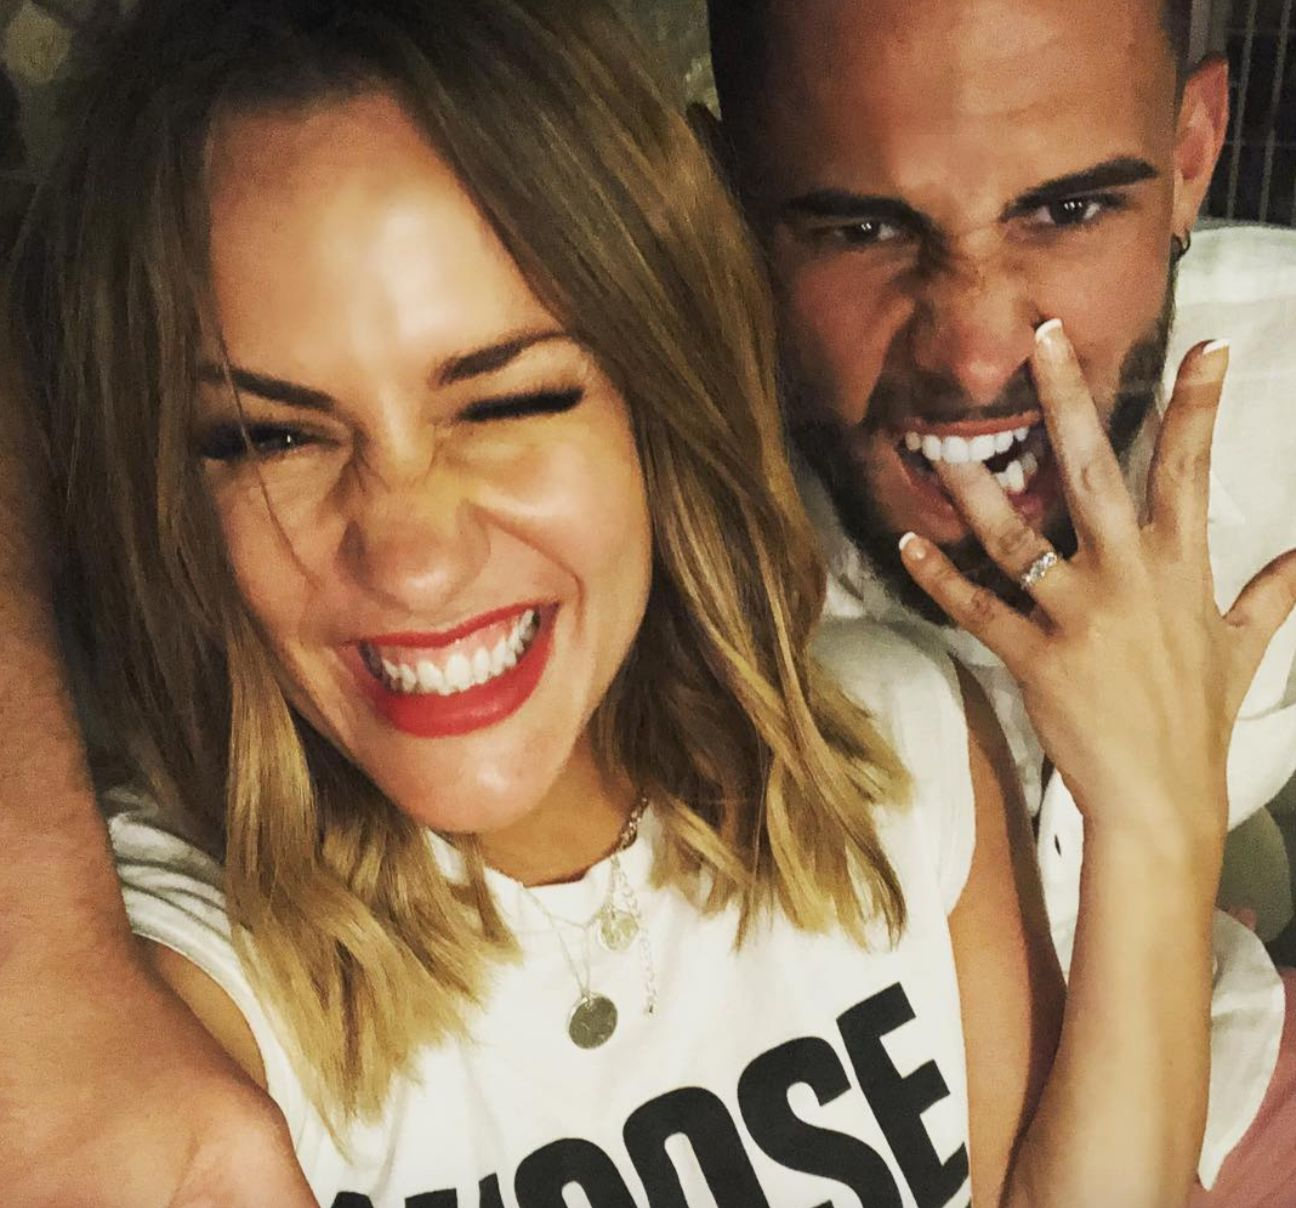 Caroline Flack Engaged To Reality TV Star Andrew Brady After Three Months Of